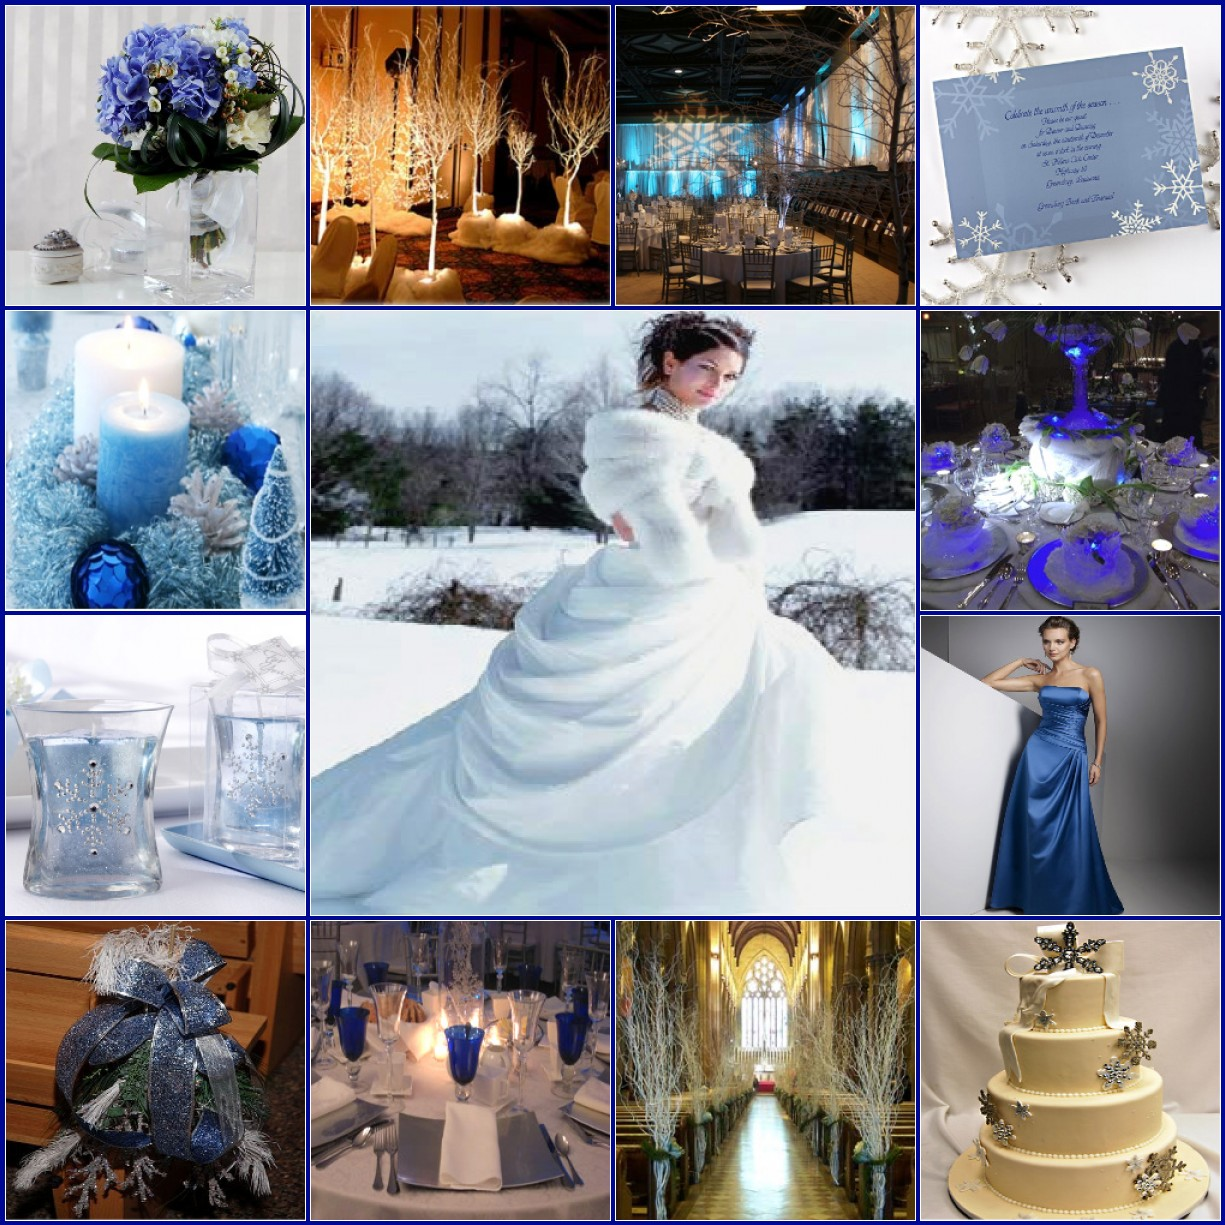 Winter wedding ideas blackhorseinnblog for What are wedding themes